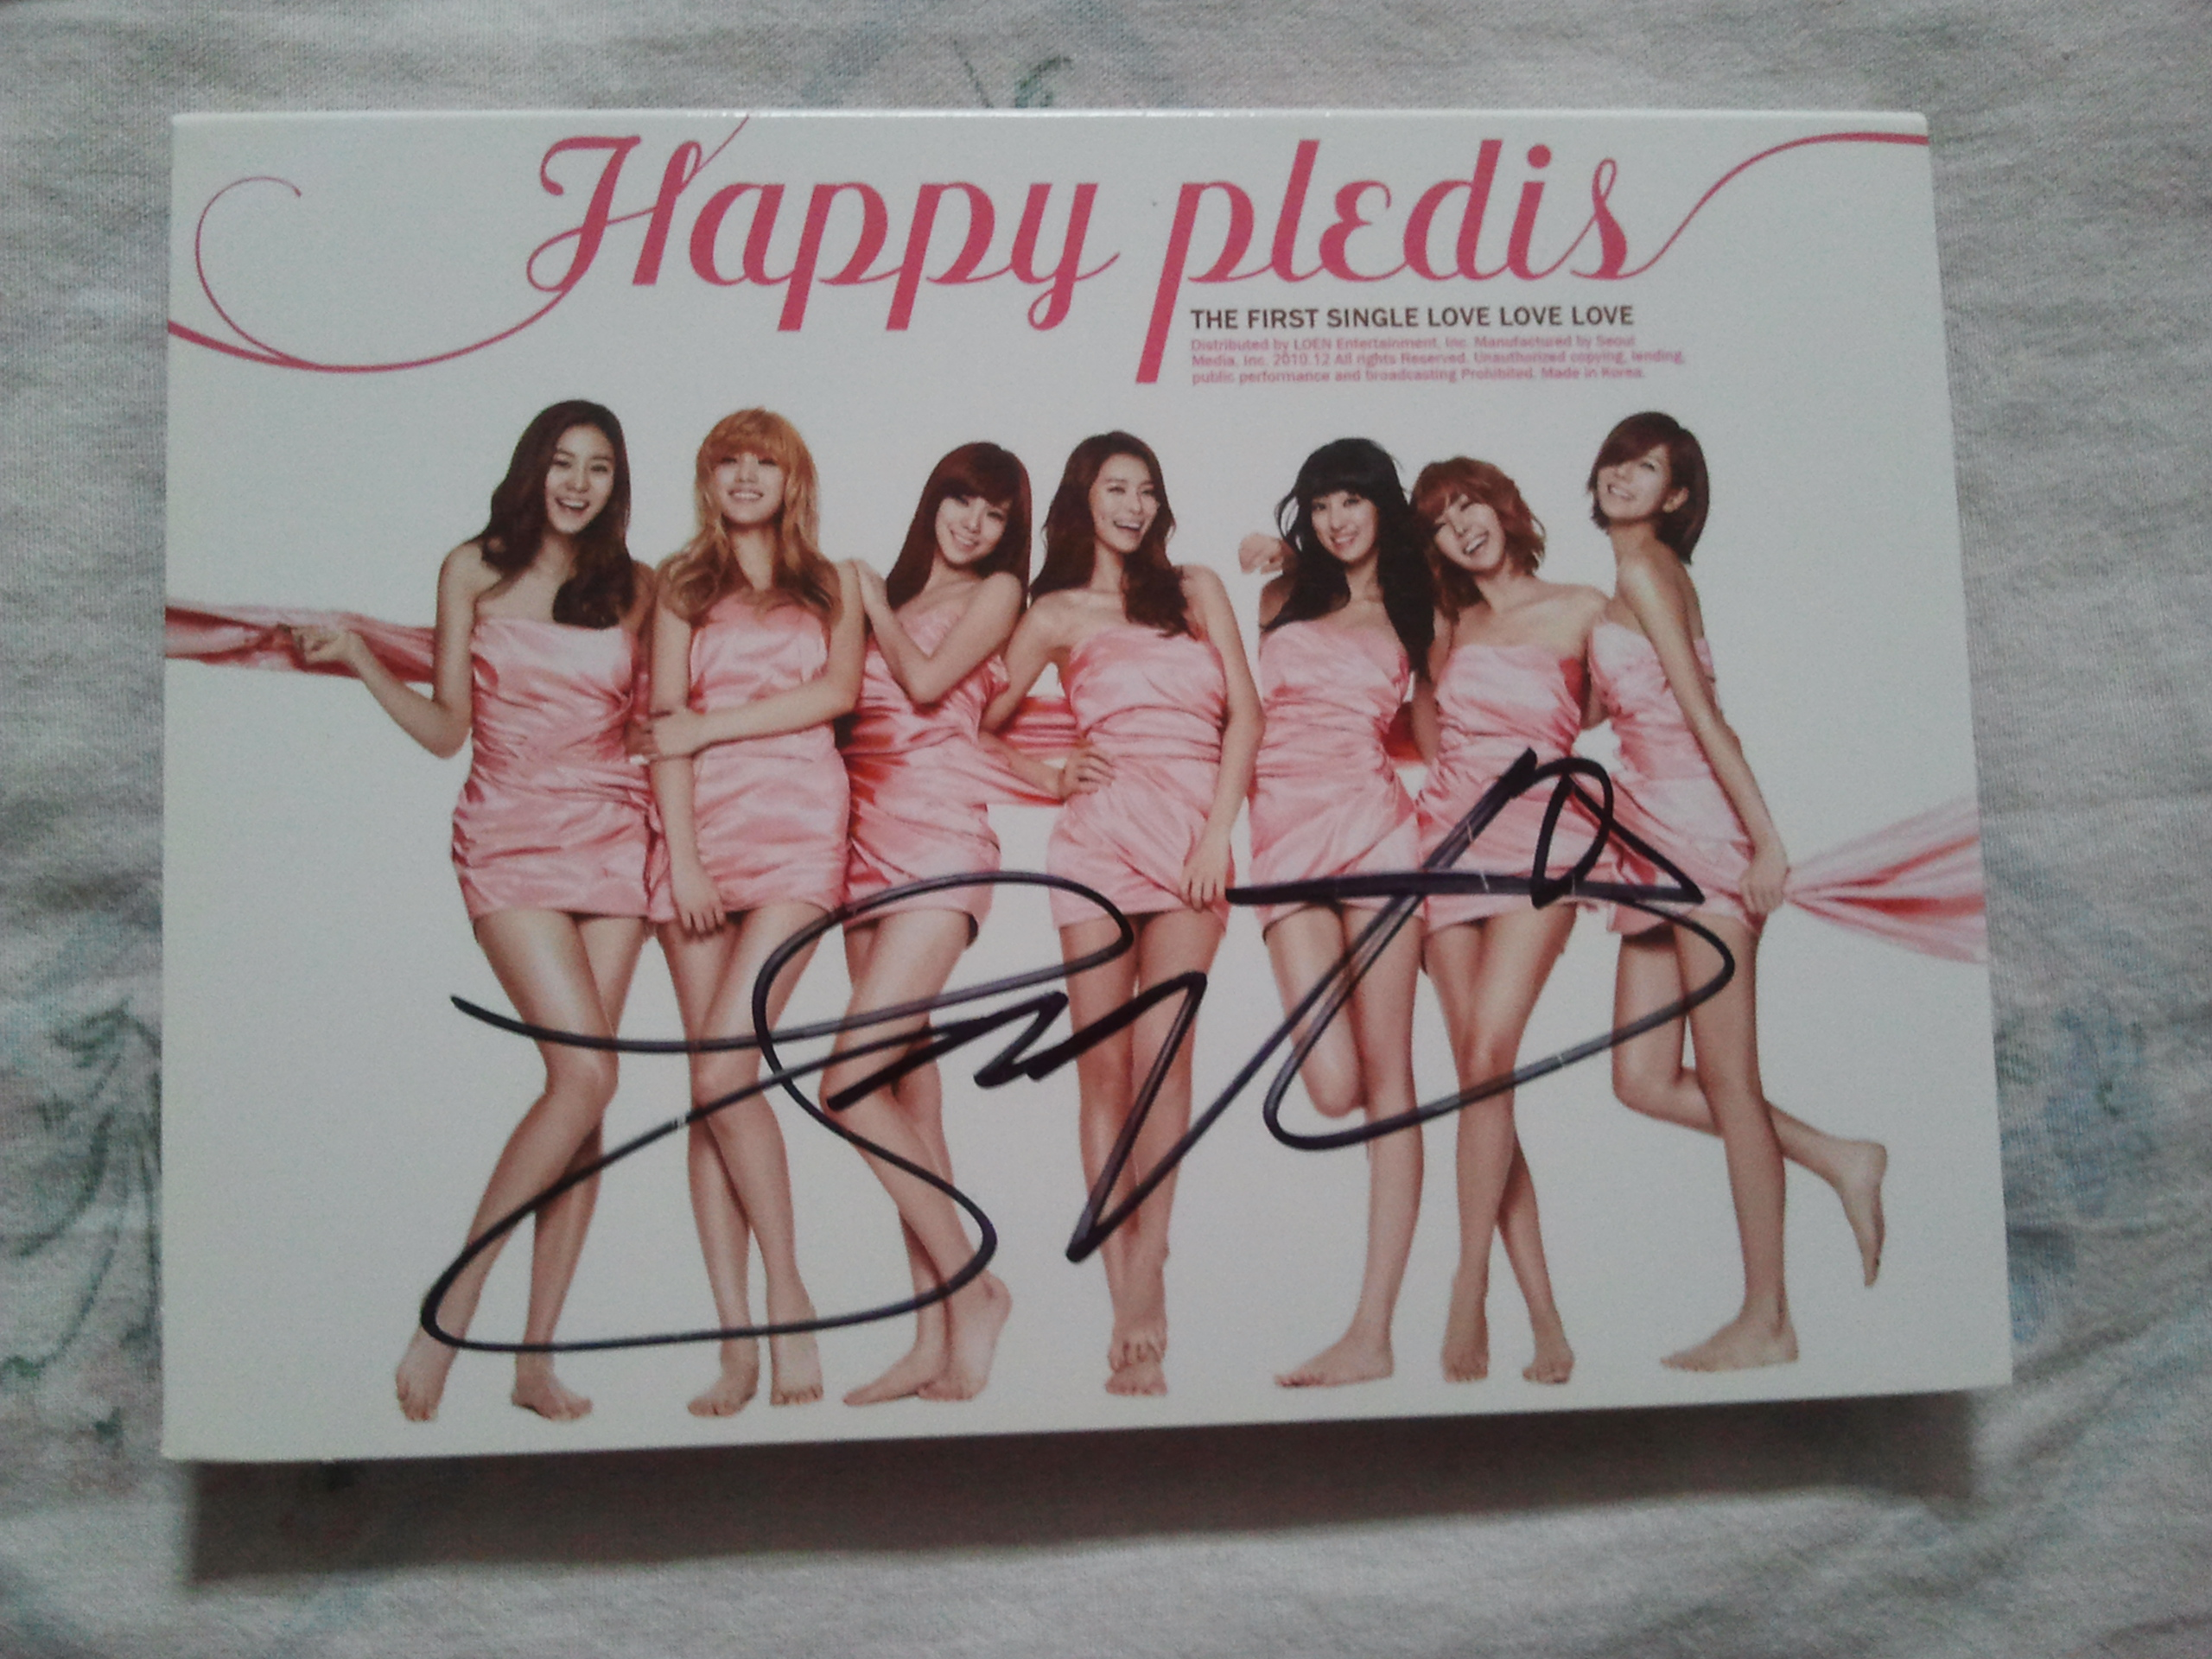 [DISCUSSION] Are the AS members changing their autographs? Calling detective PGZ and PBZ! 15862420140820134305